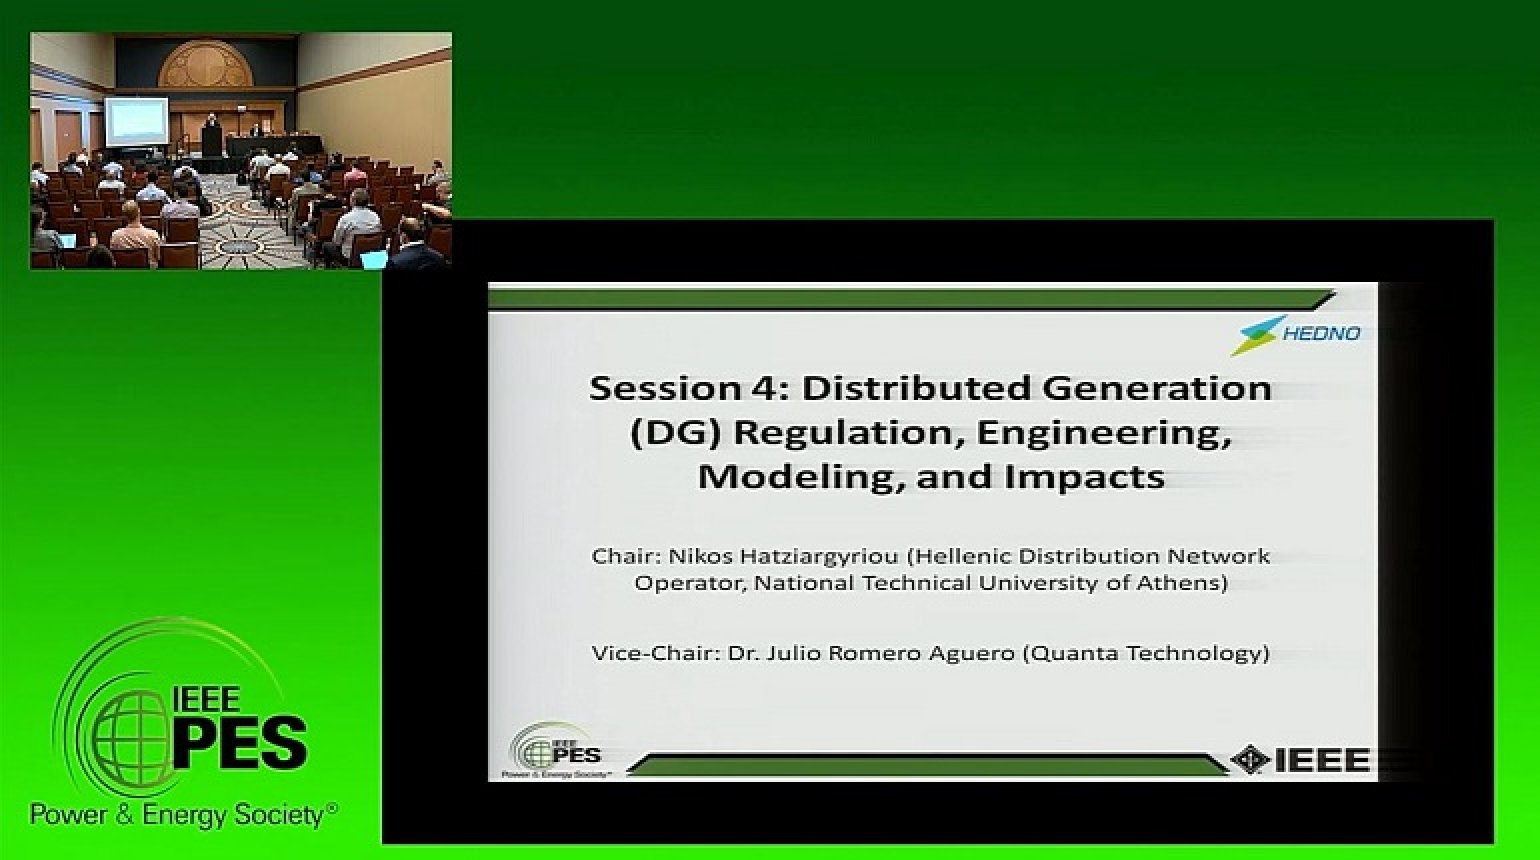 PES GM 2017 - Distributed Generation (DG), Regulation, Engineering, Modeling, and Impacts Super Session